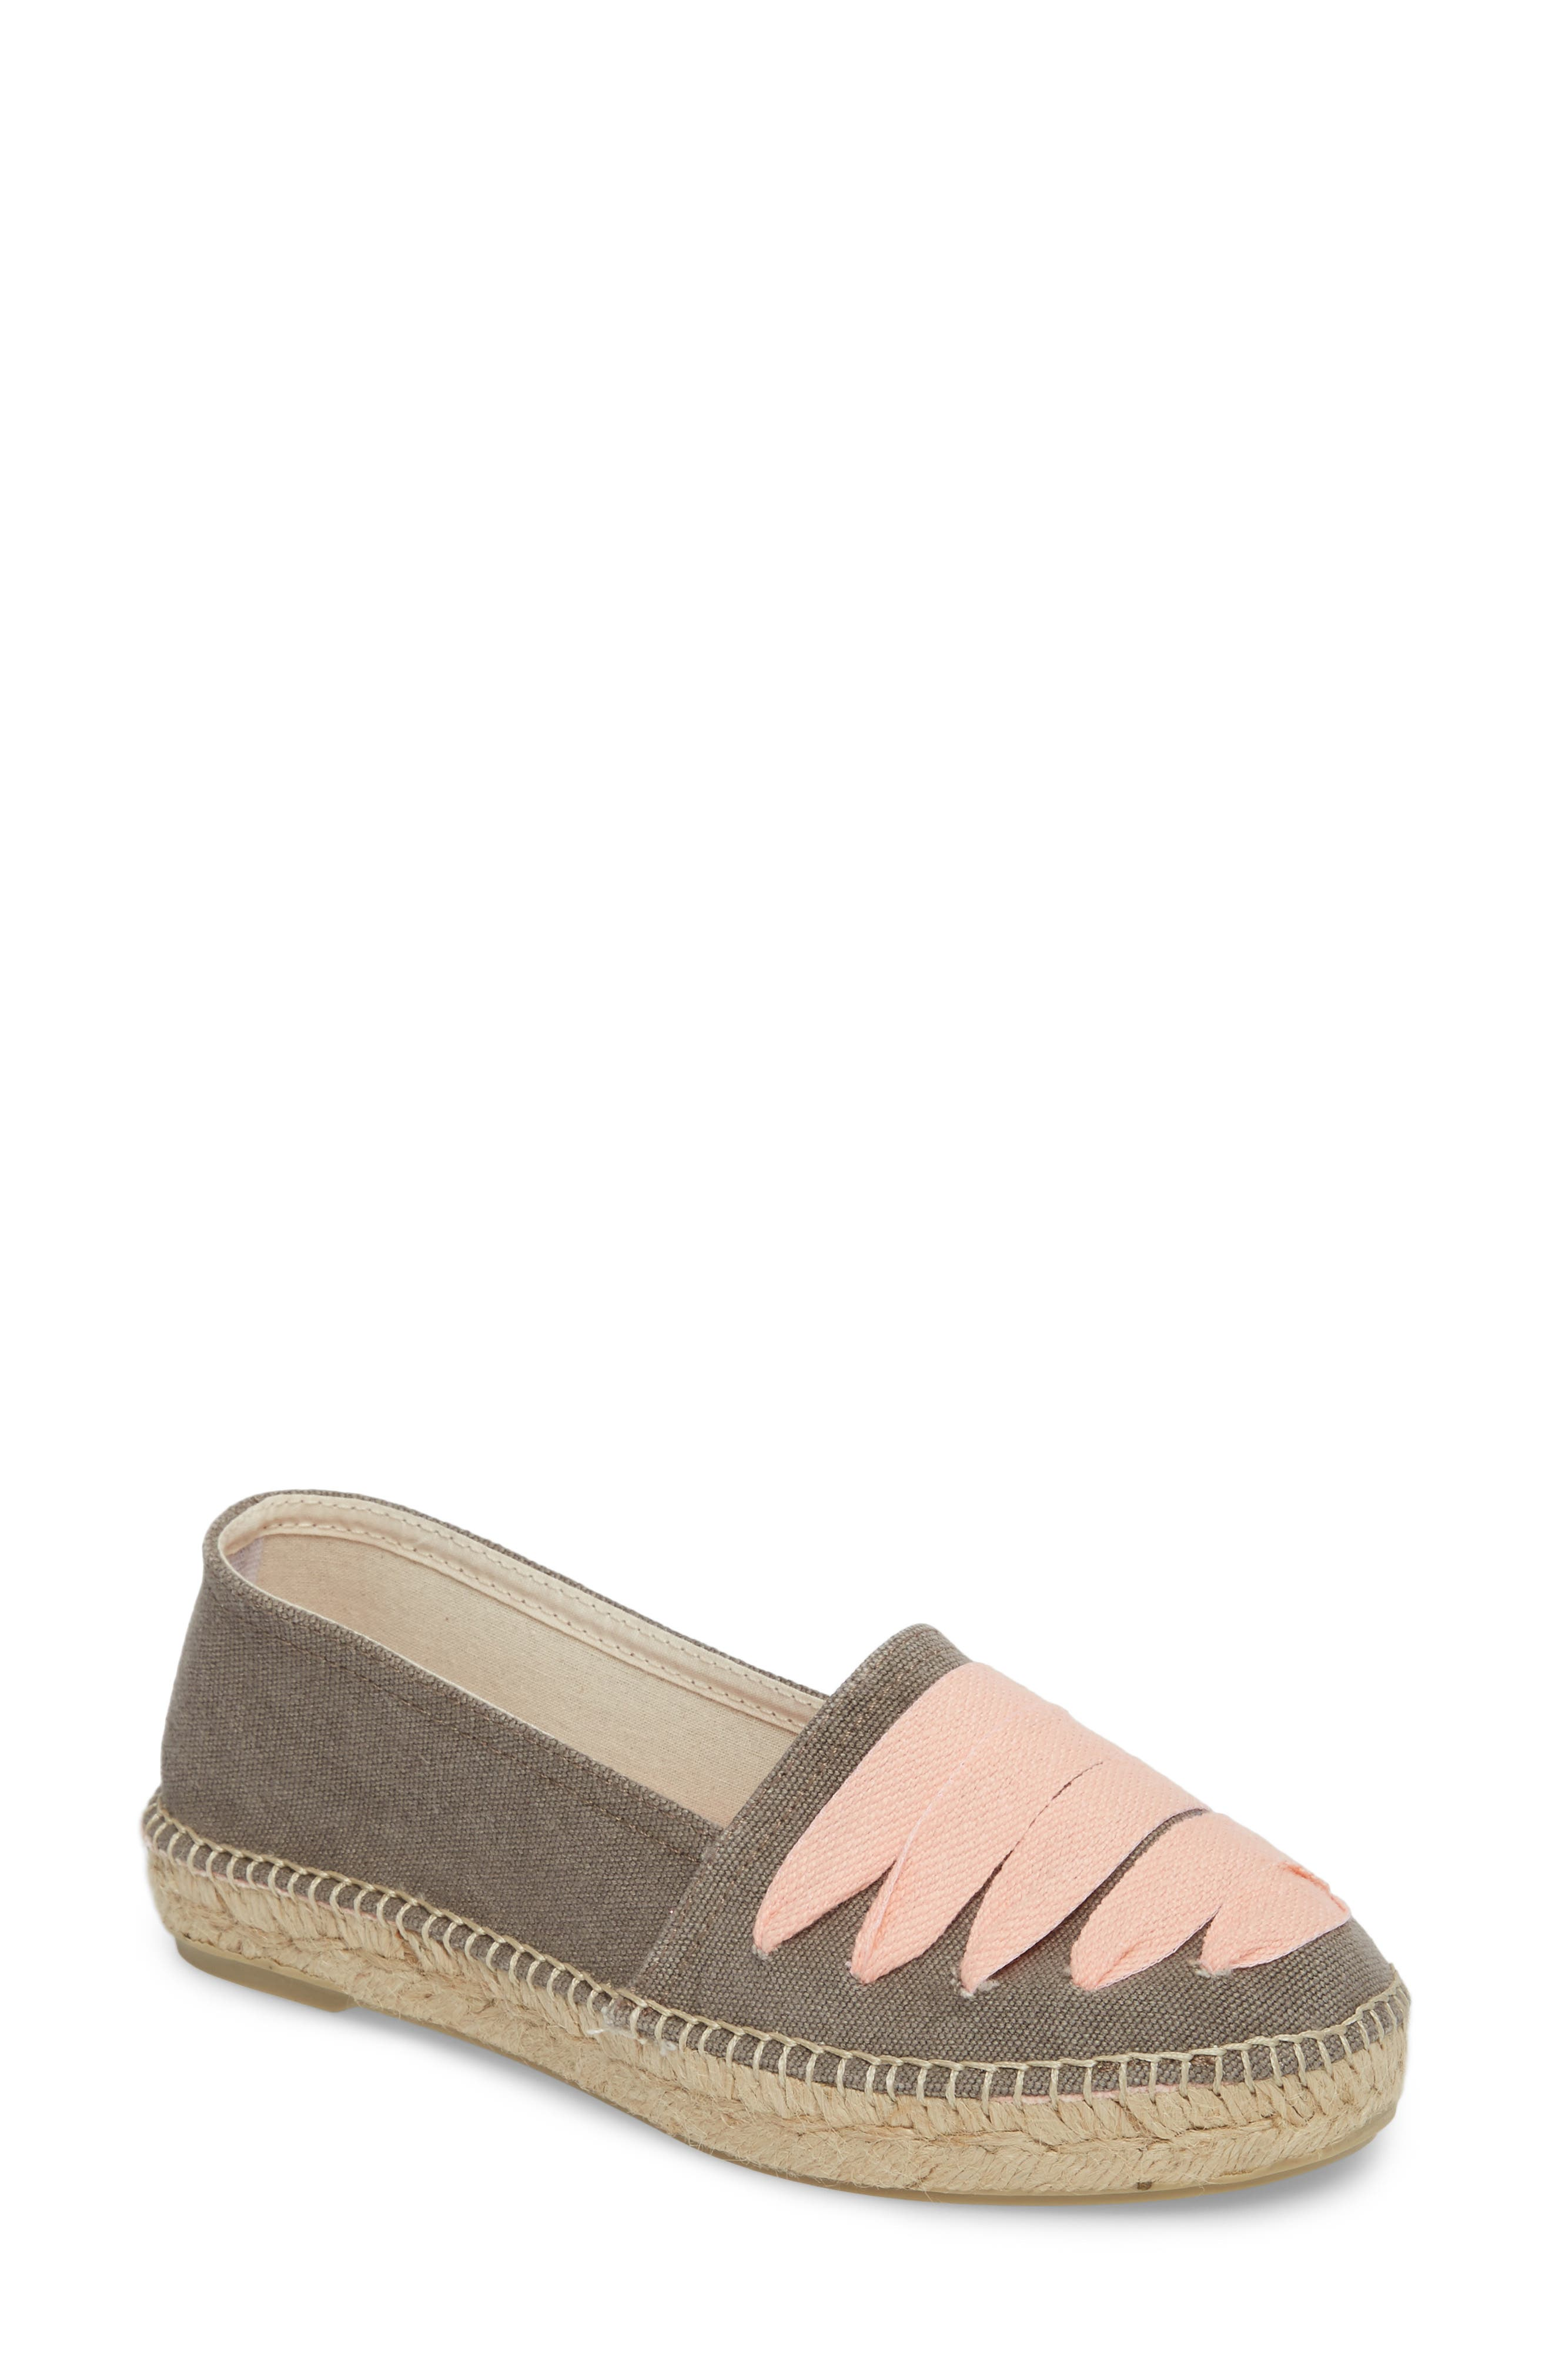 Rubi Espadrille Flat,                         Main,                         color, Gris/ Rosa Fabric